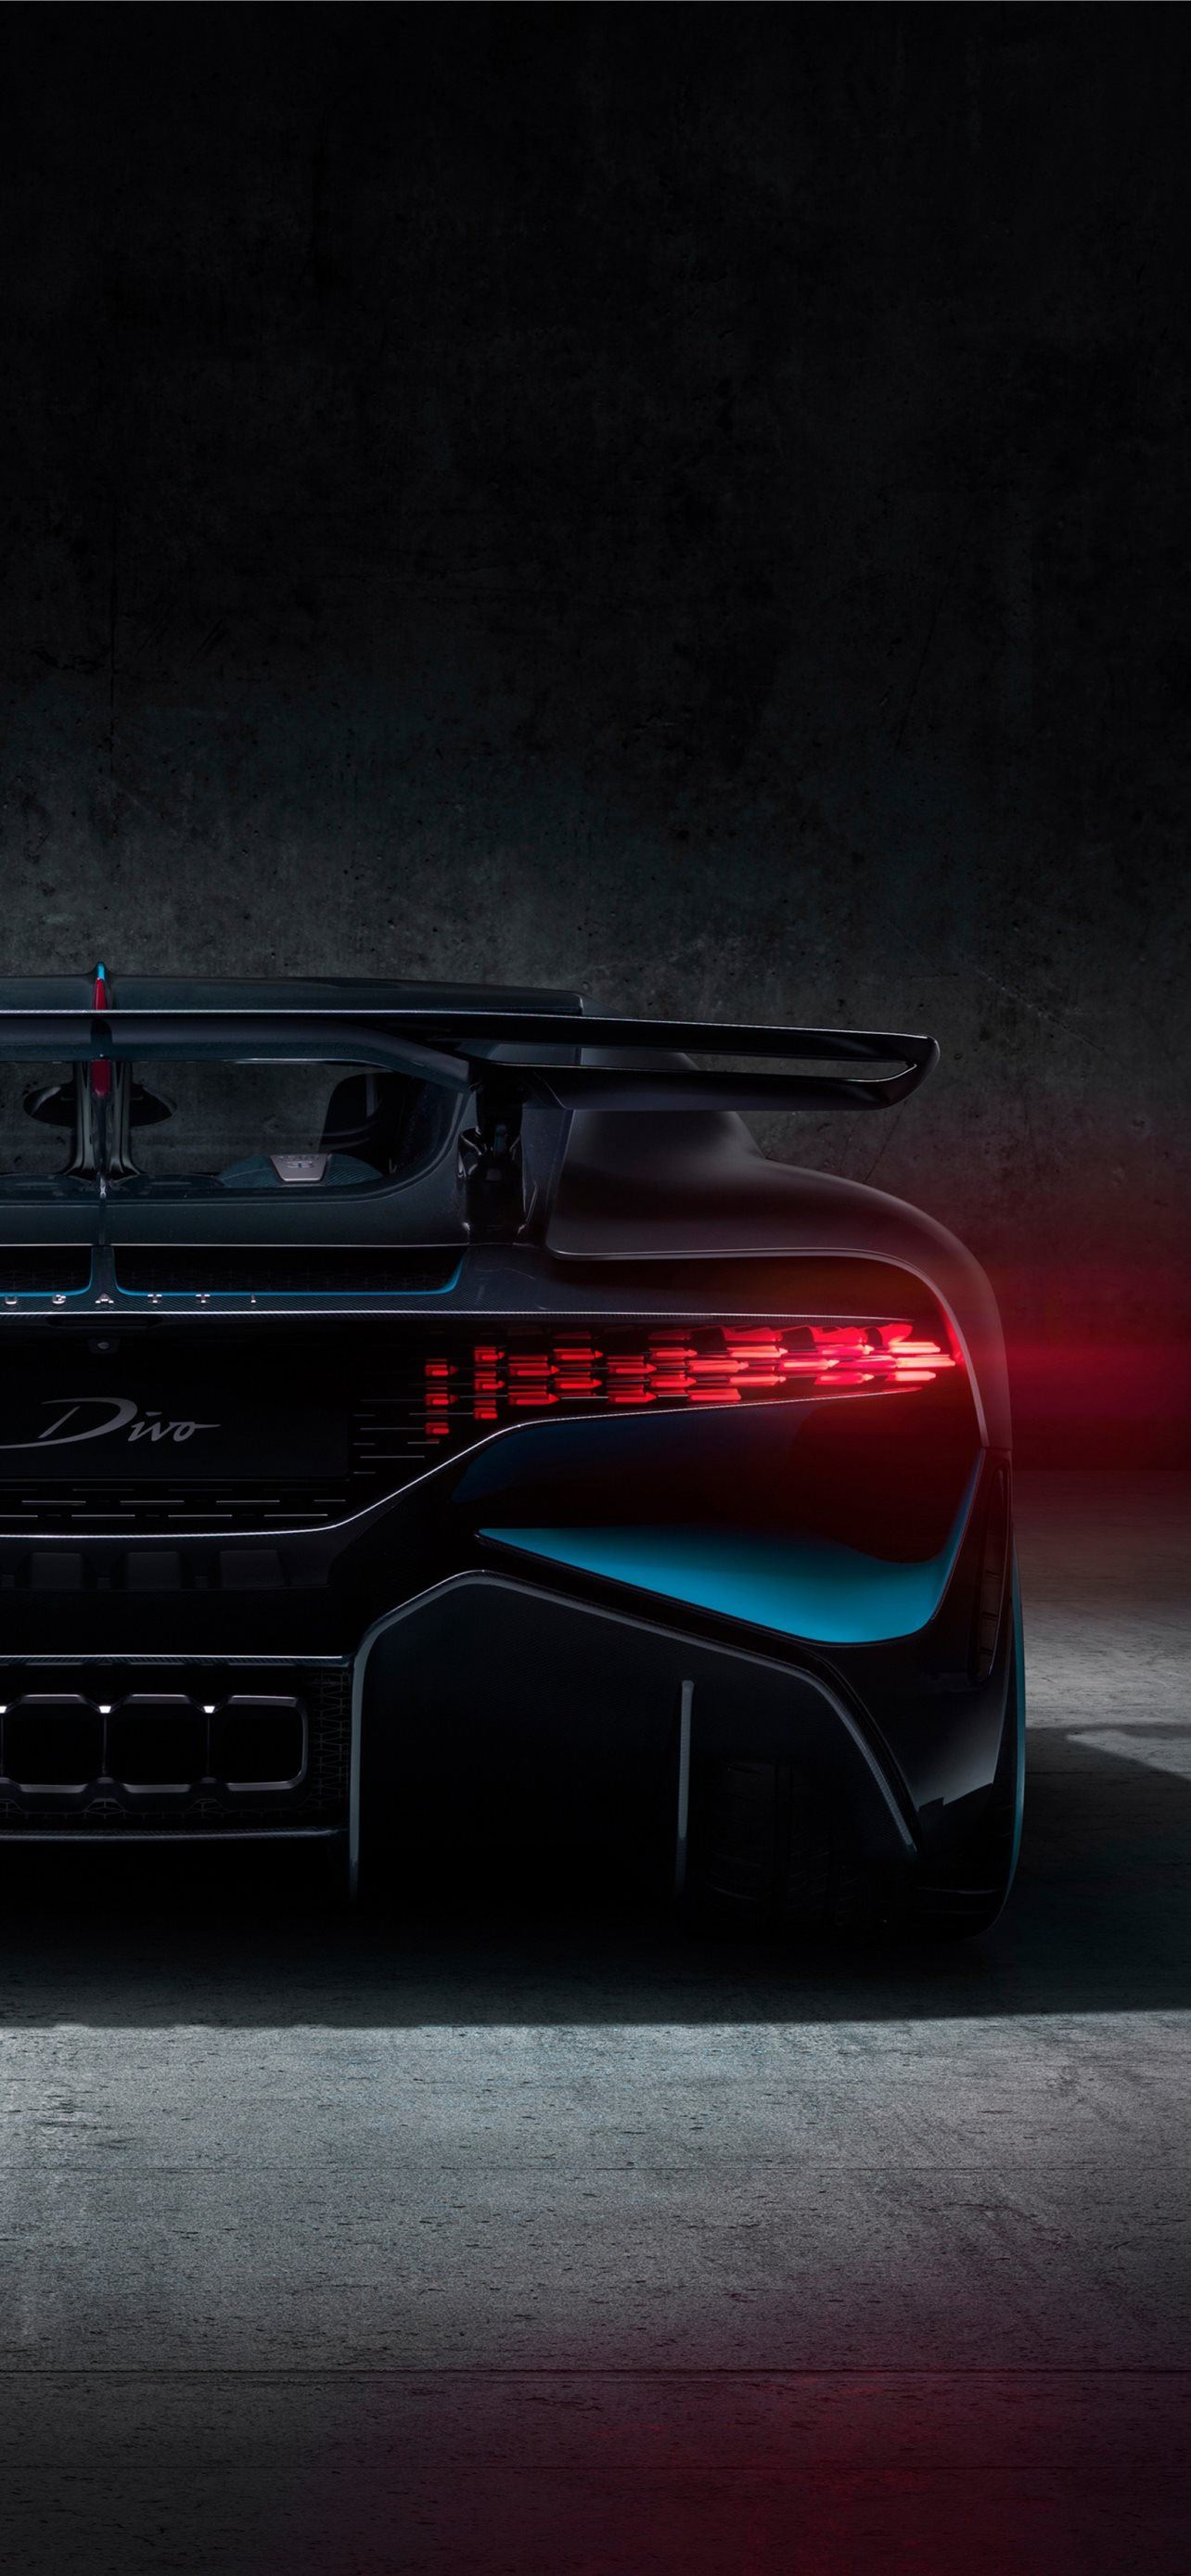 Free images phone hd wallpapers. Bugatti Divo 2019 Cars Supercar 4k Cars Bikes Iphone Wallpapers Free Download